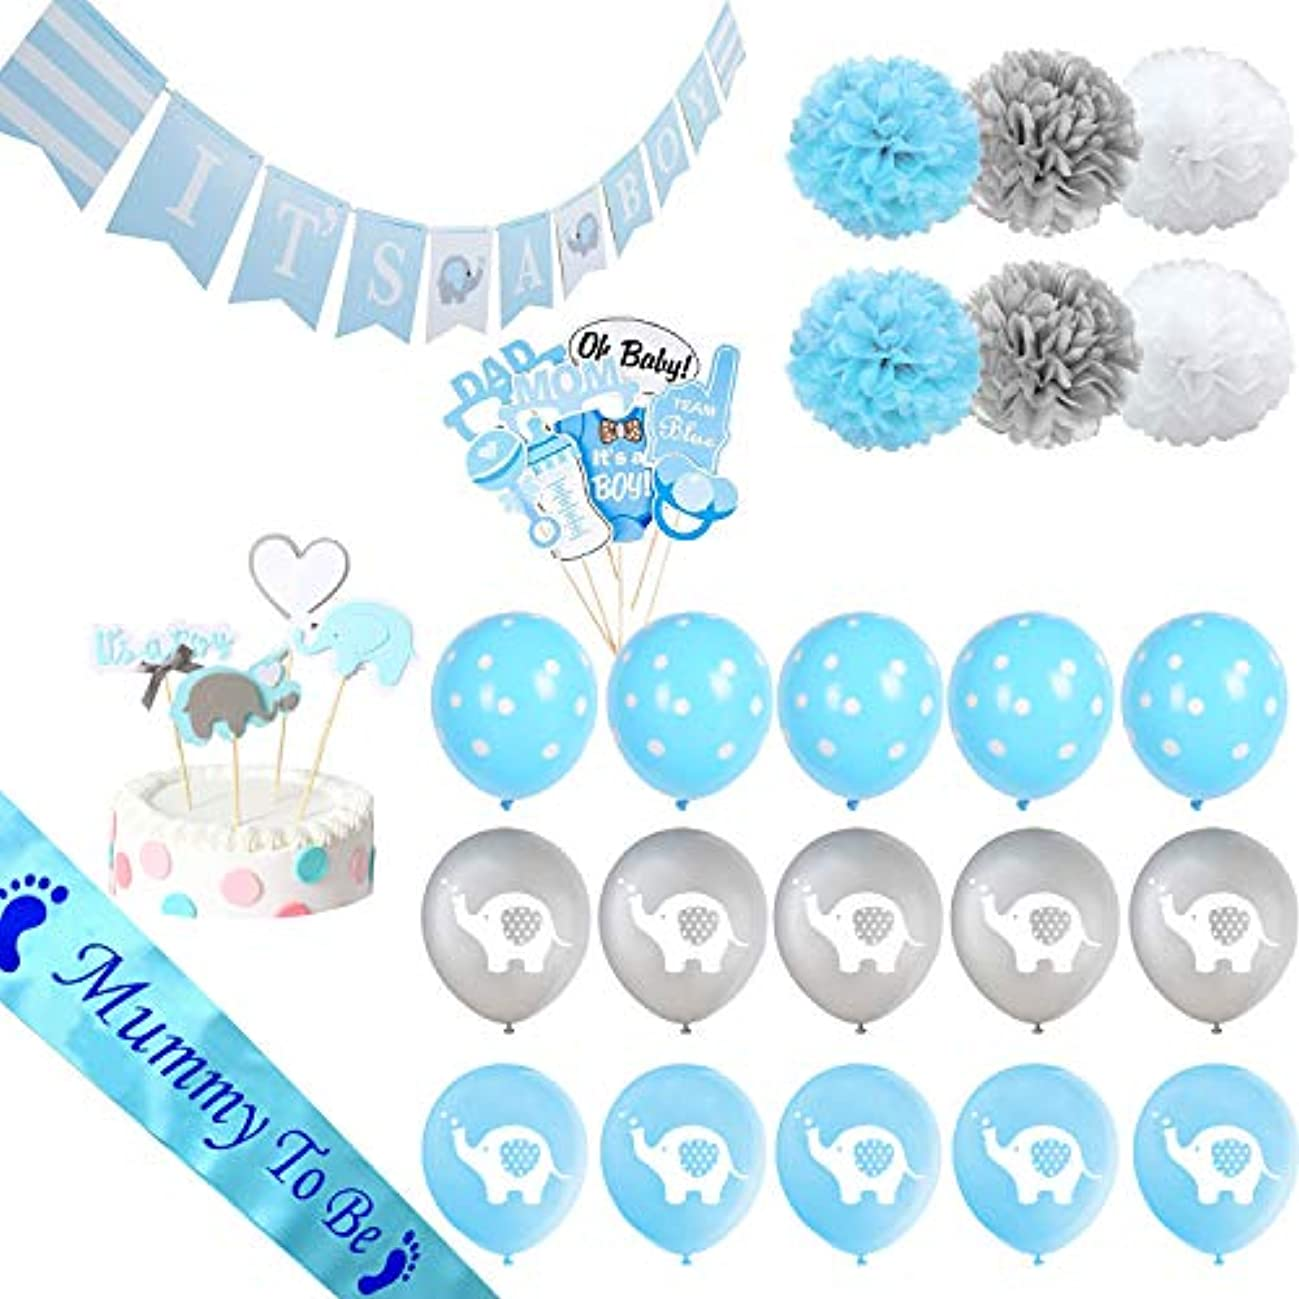 Haimimall Baby Shower Decorations for Boy It's A BOY Banner Elephant style, Balloons, Mummy To Be Sash, Baby Shower Photo Booth Props, Cake Topper, Pom Poms